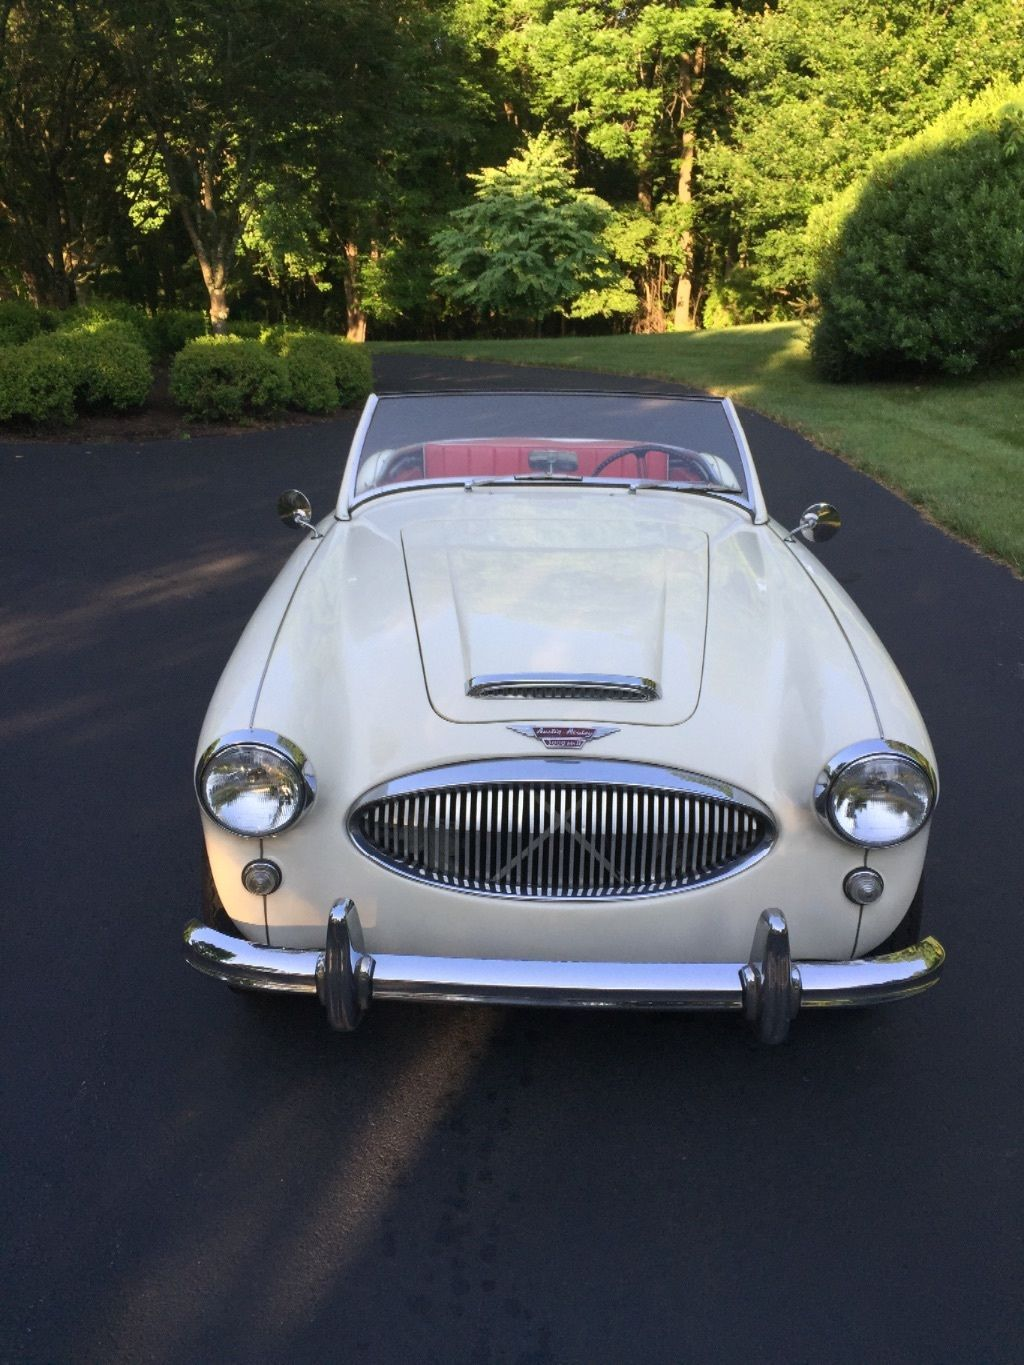 Austin Healey 3000 Bt 7 2x2 With Operating Electric Overdrive